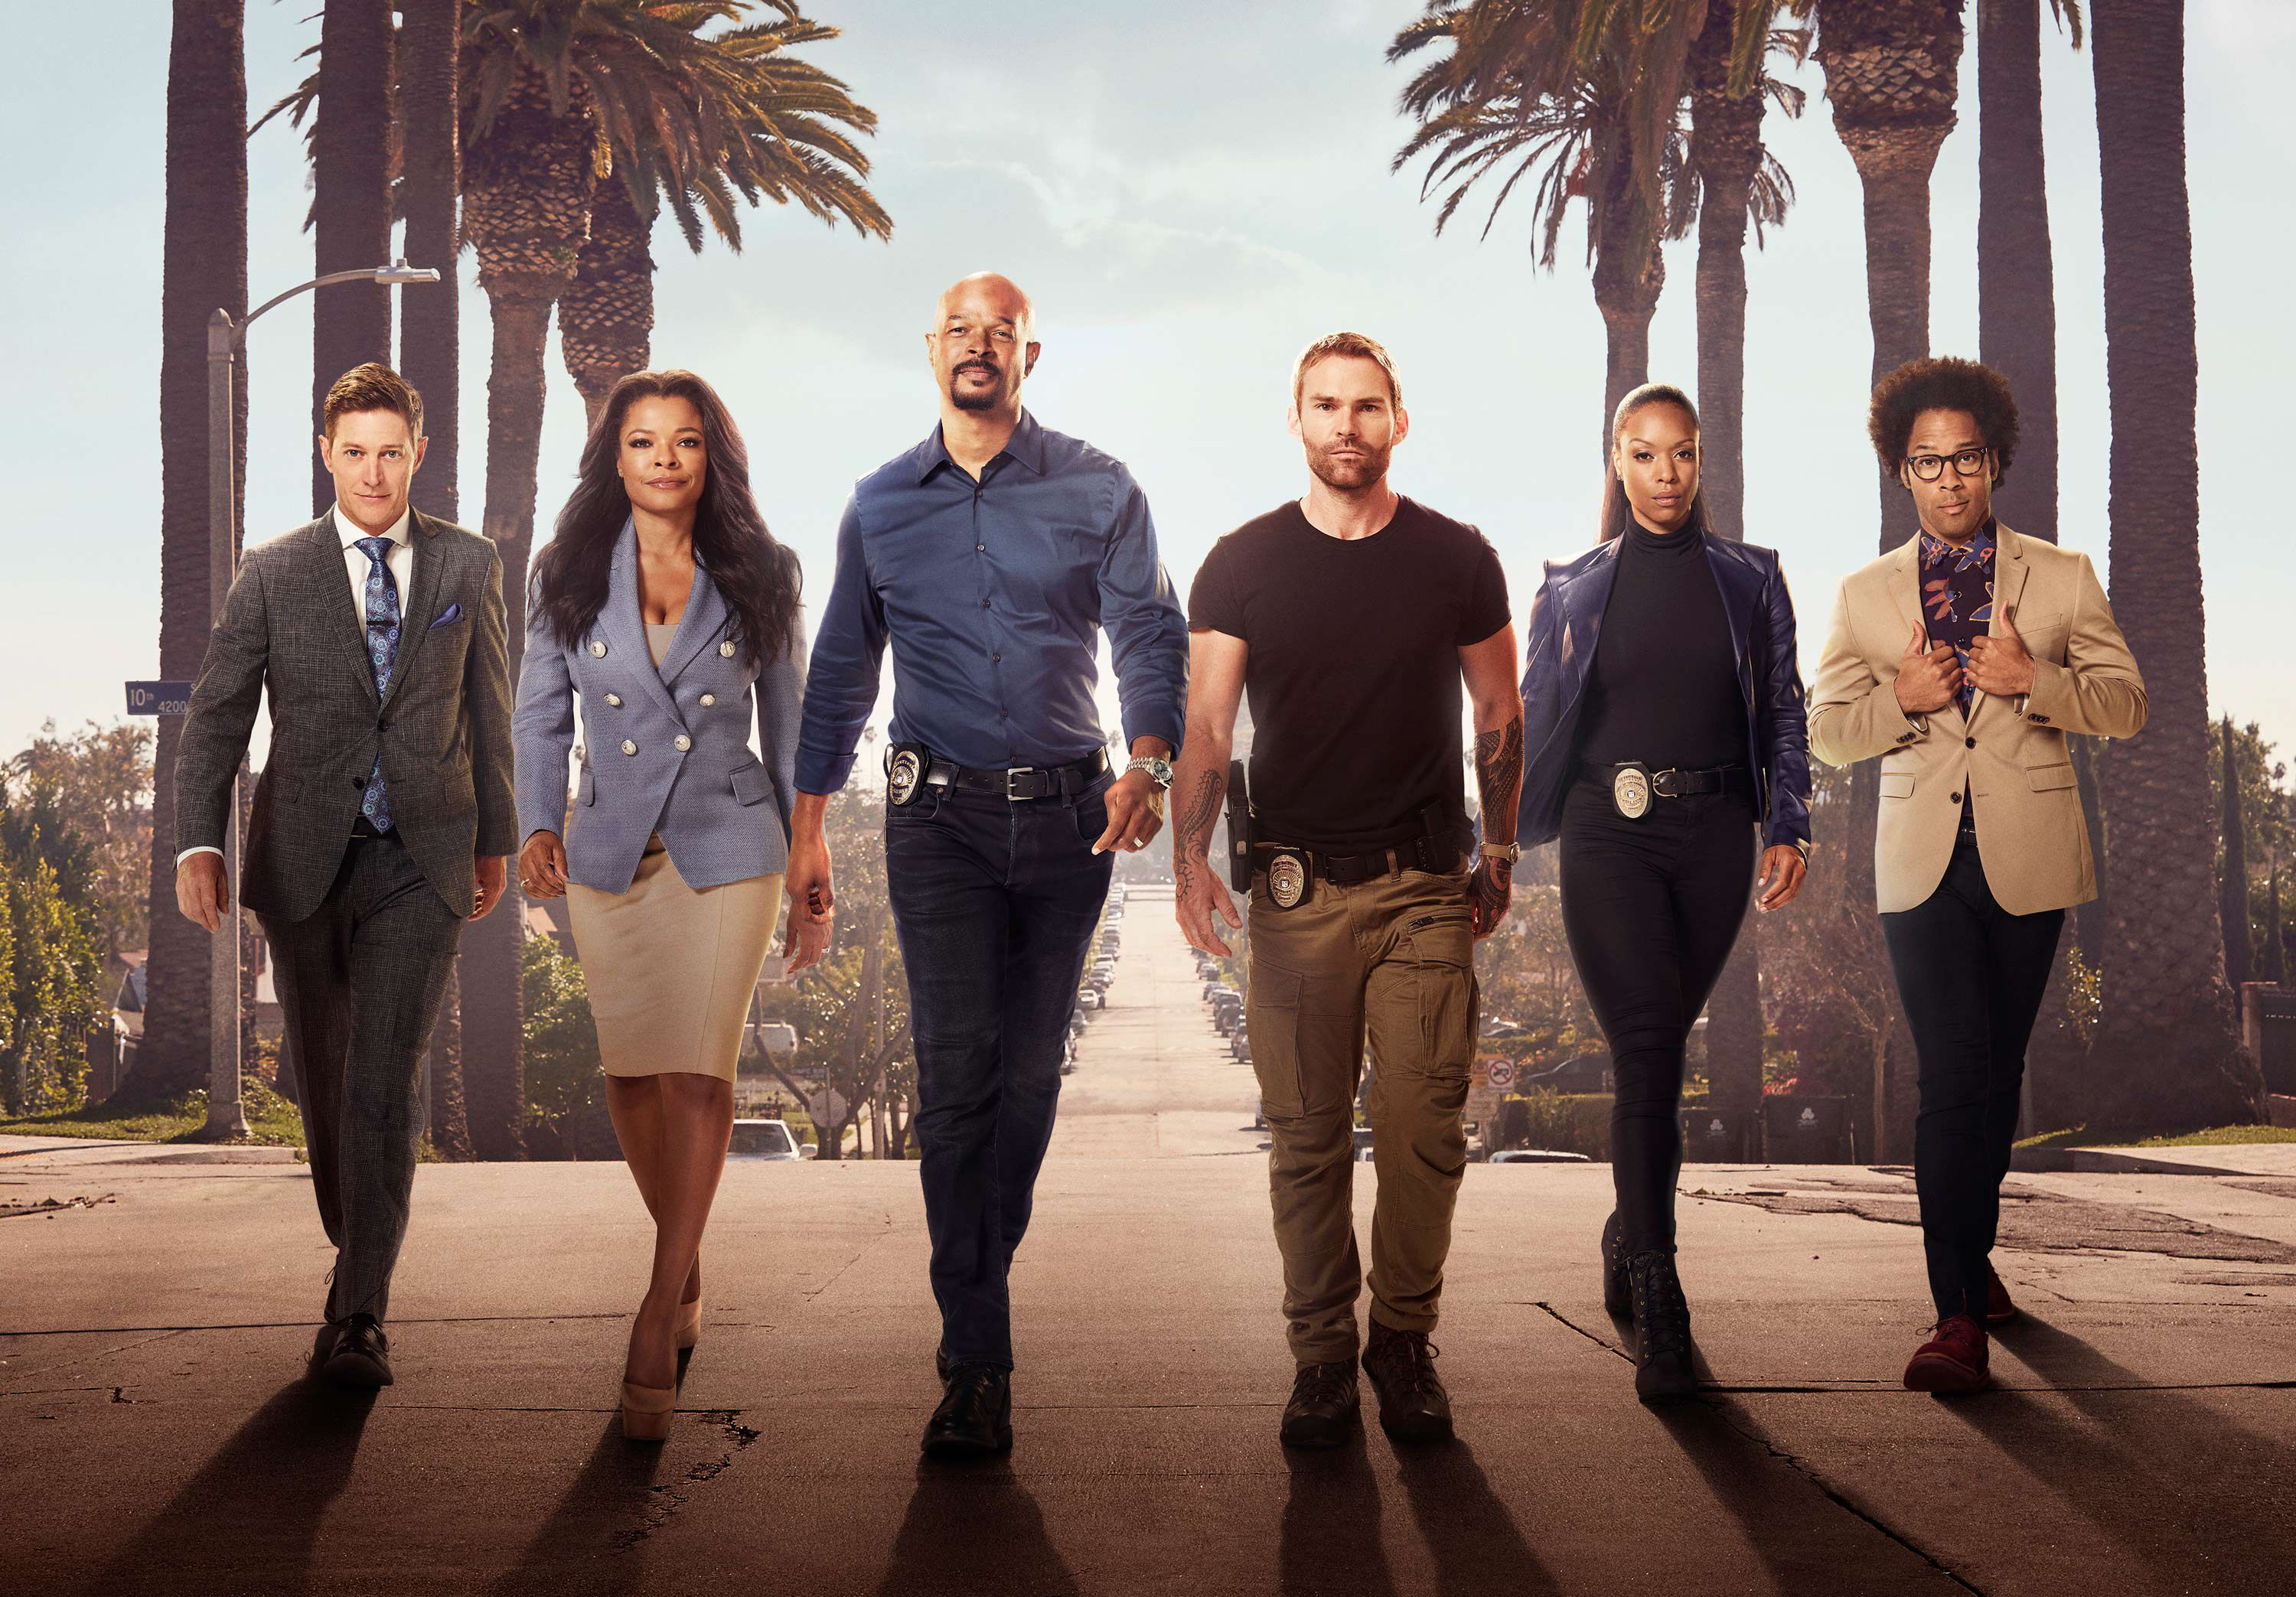 Lethal Weapon Season 4: Will There Be Another Season?